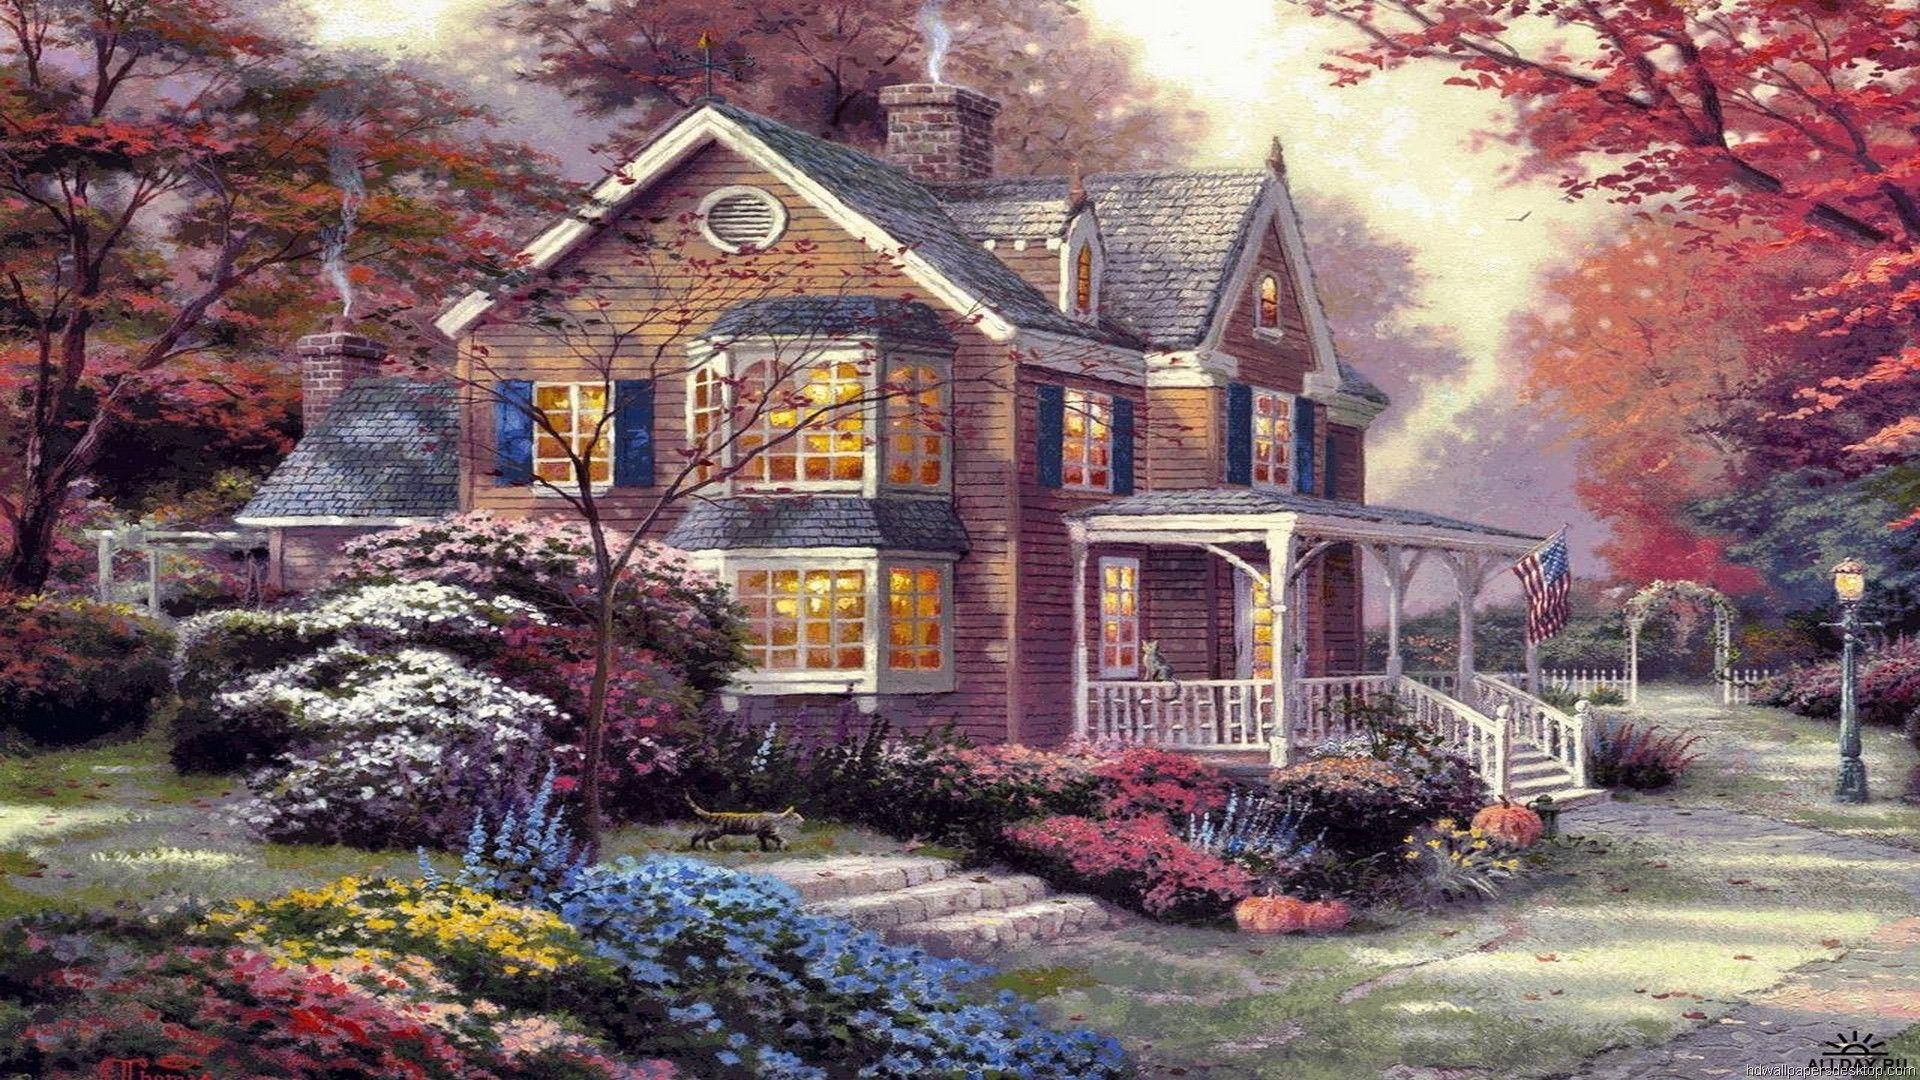 thomas kinkade wallpaper 1920x1080 - photo #44